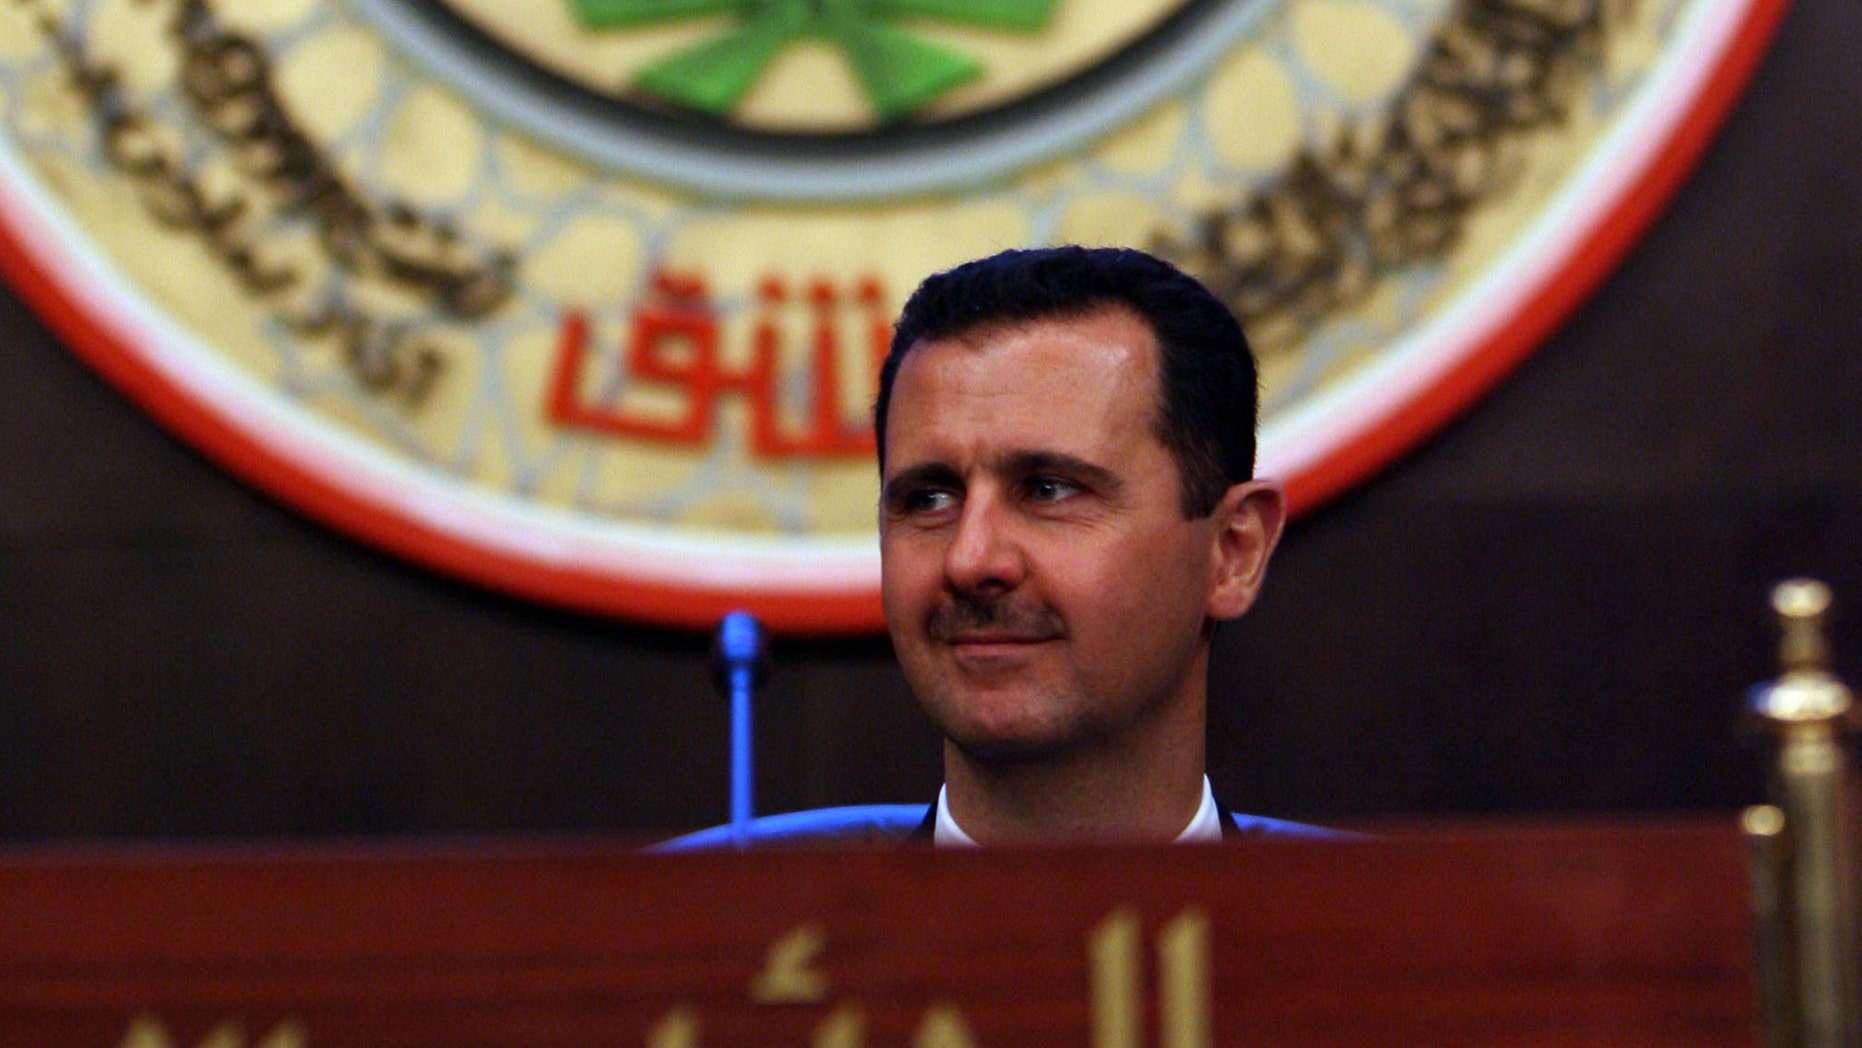 Syrian President Bashar al-Assad heads the closing of the two-day Arab summit on March 30, 2008 in Damascus, Syria. (Photo by Salah Malkawi/ Getty Images)